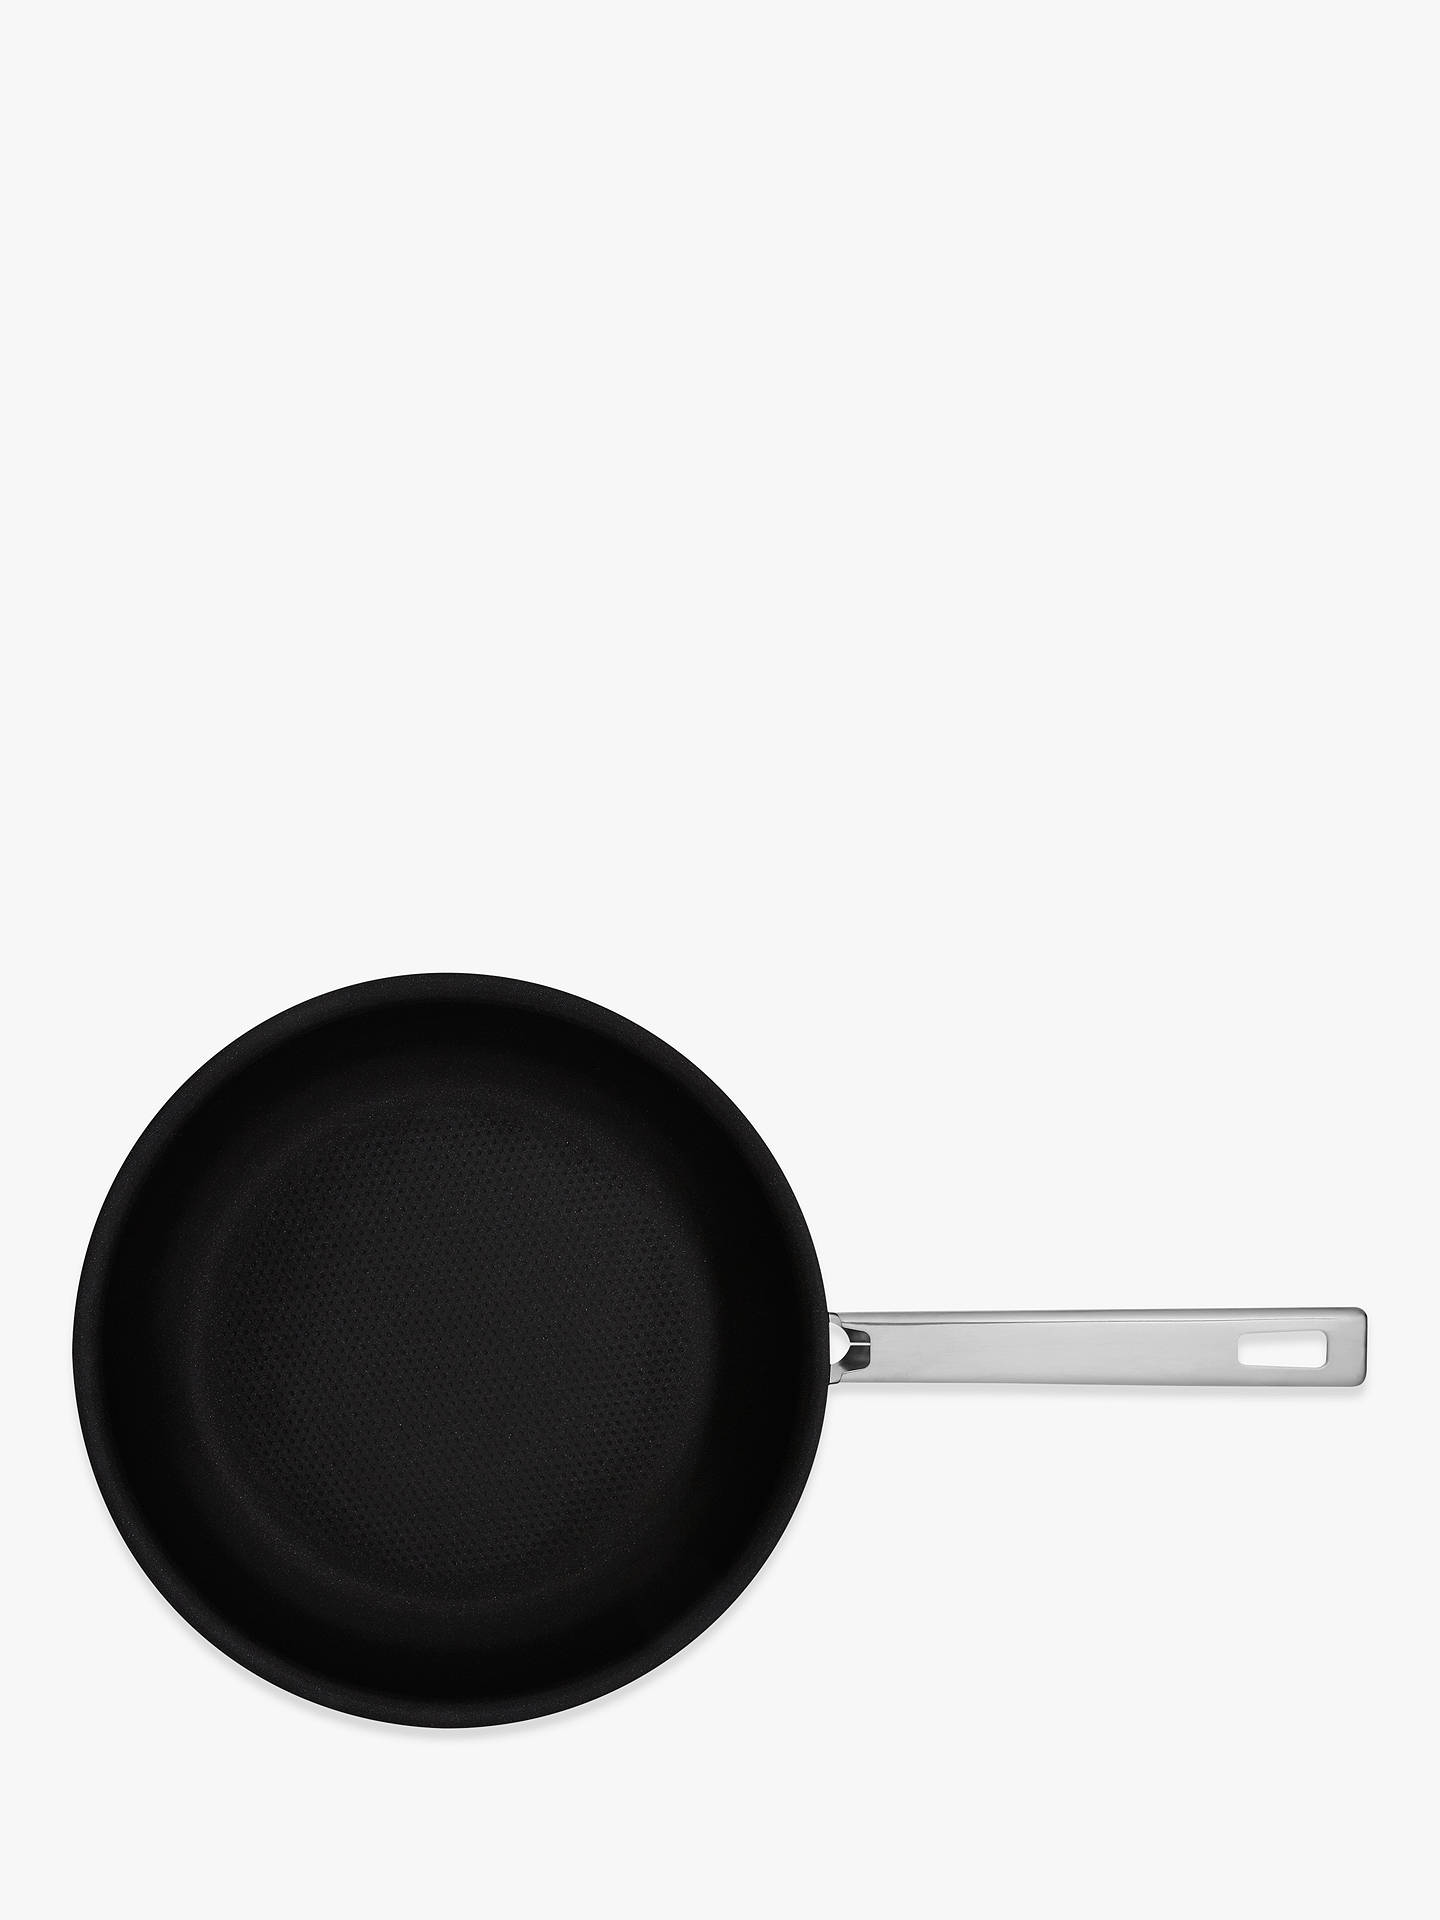 Buy John Lewis & Partners Classic Stainless Steel Non-Stick Frying Pan, 24cm Online at johnlewis.com